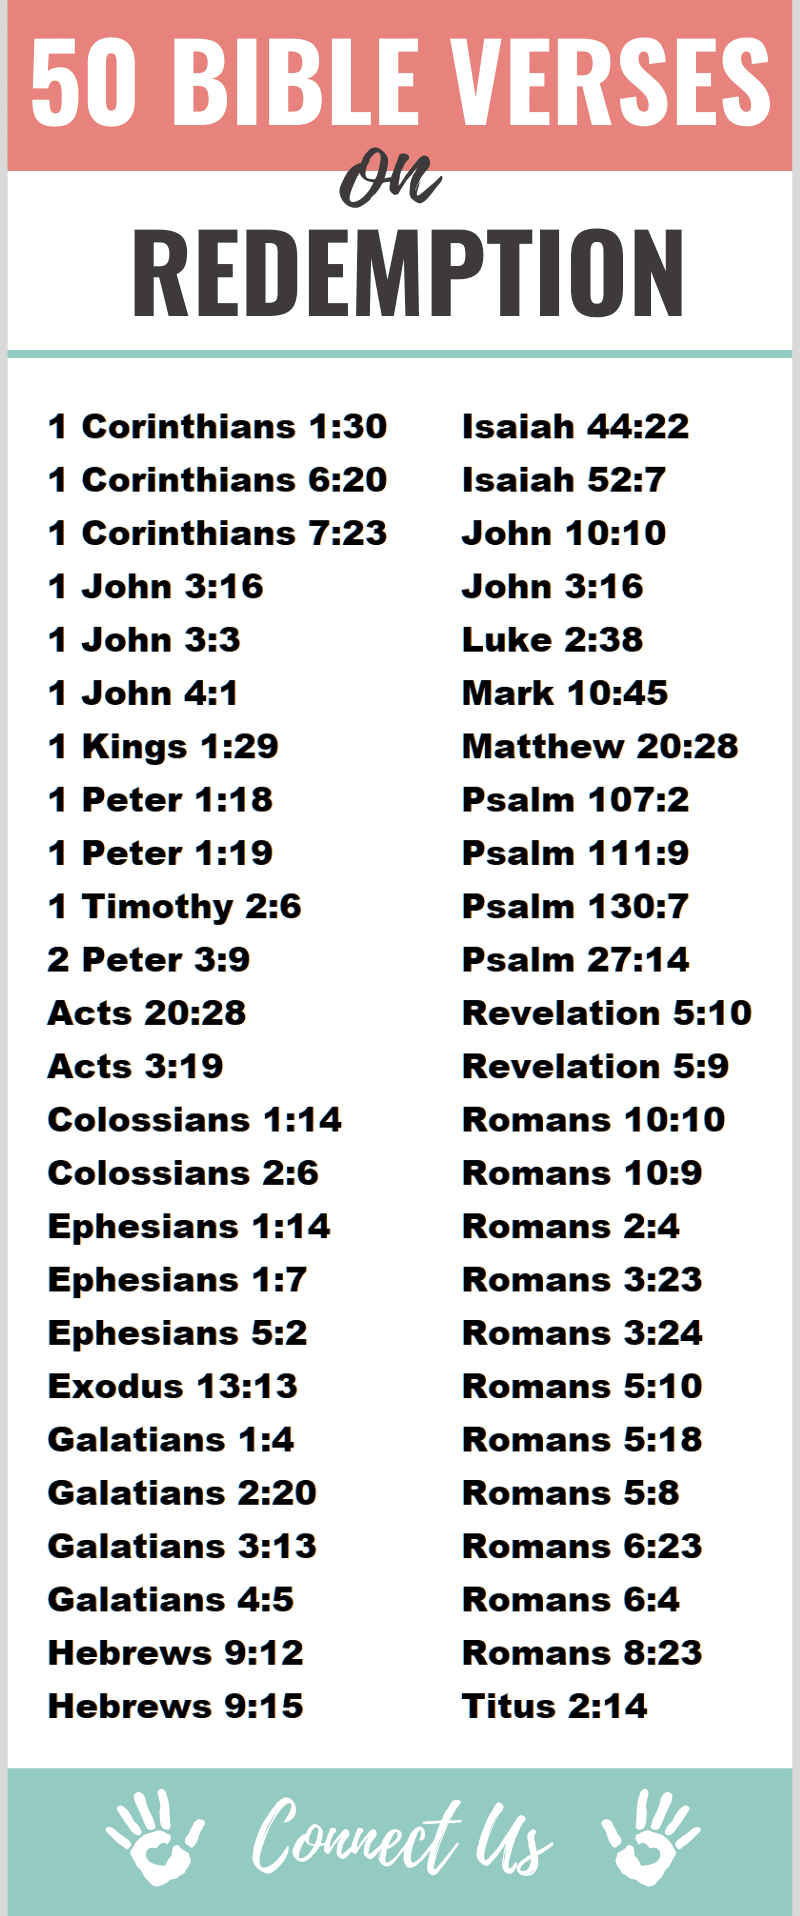 Bible Verses on Redemption